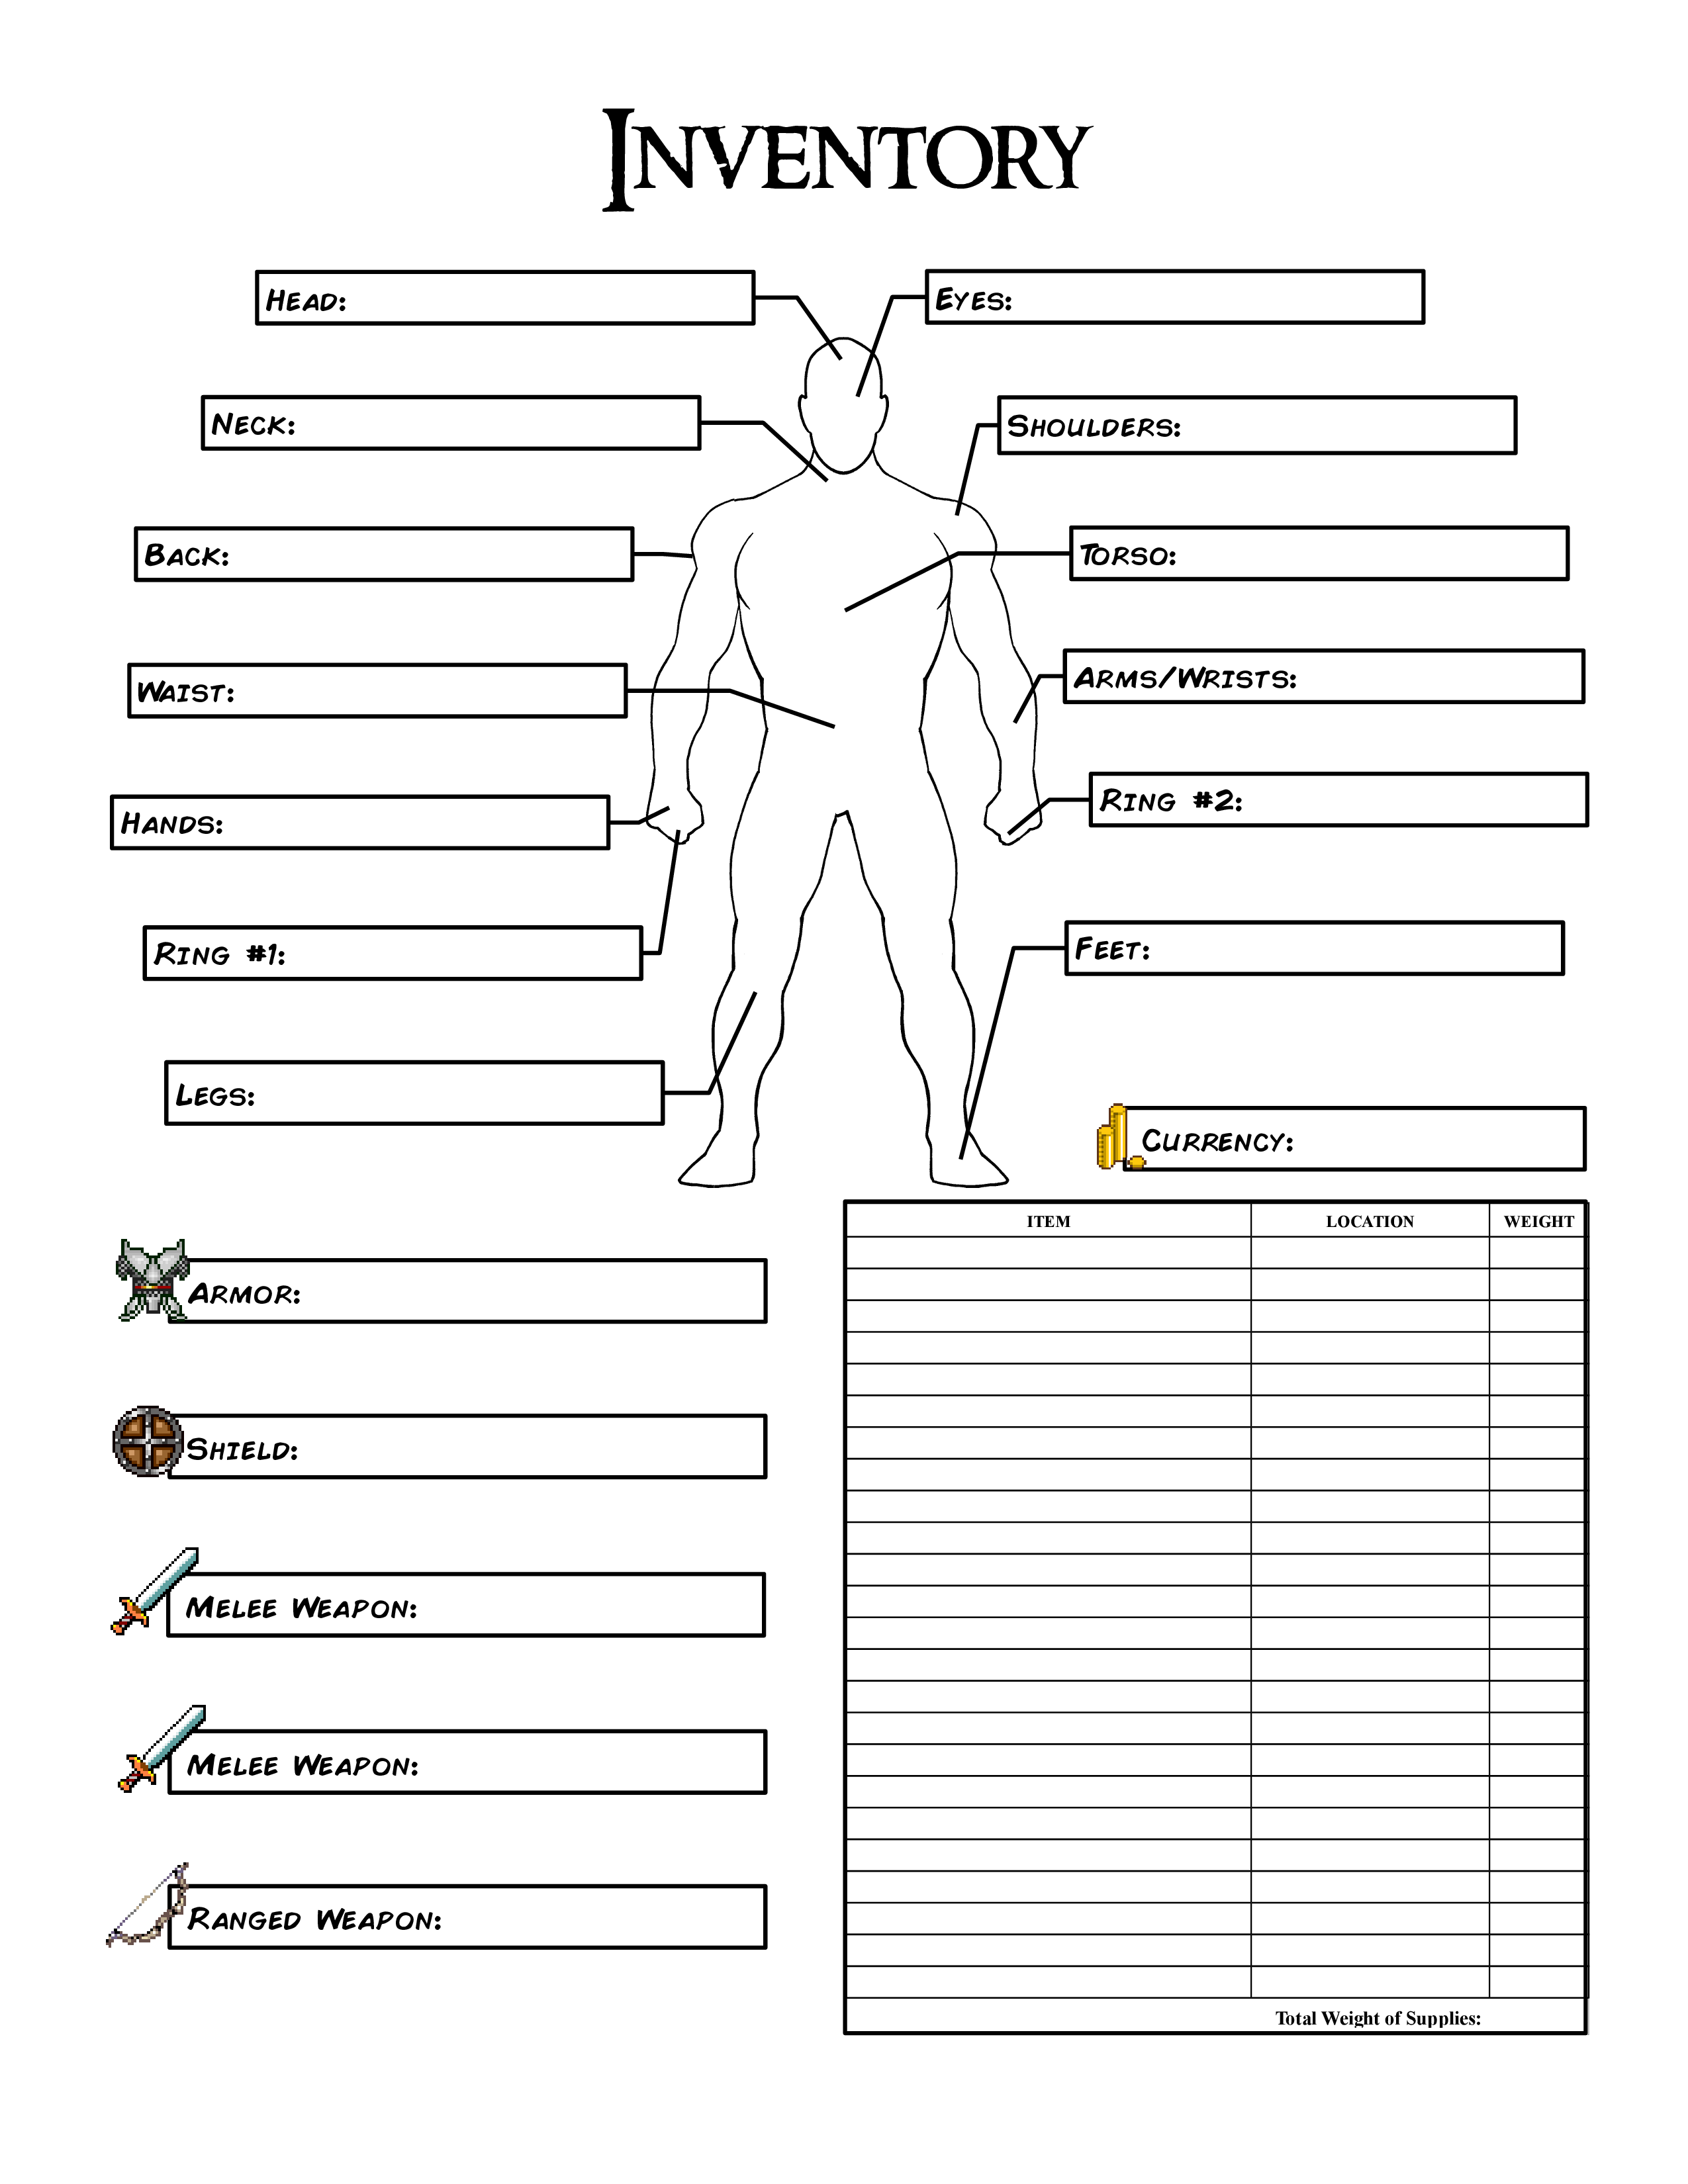 D20 outline png. I like this inventory